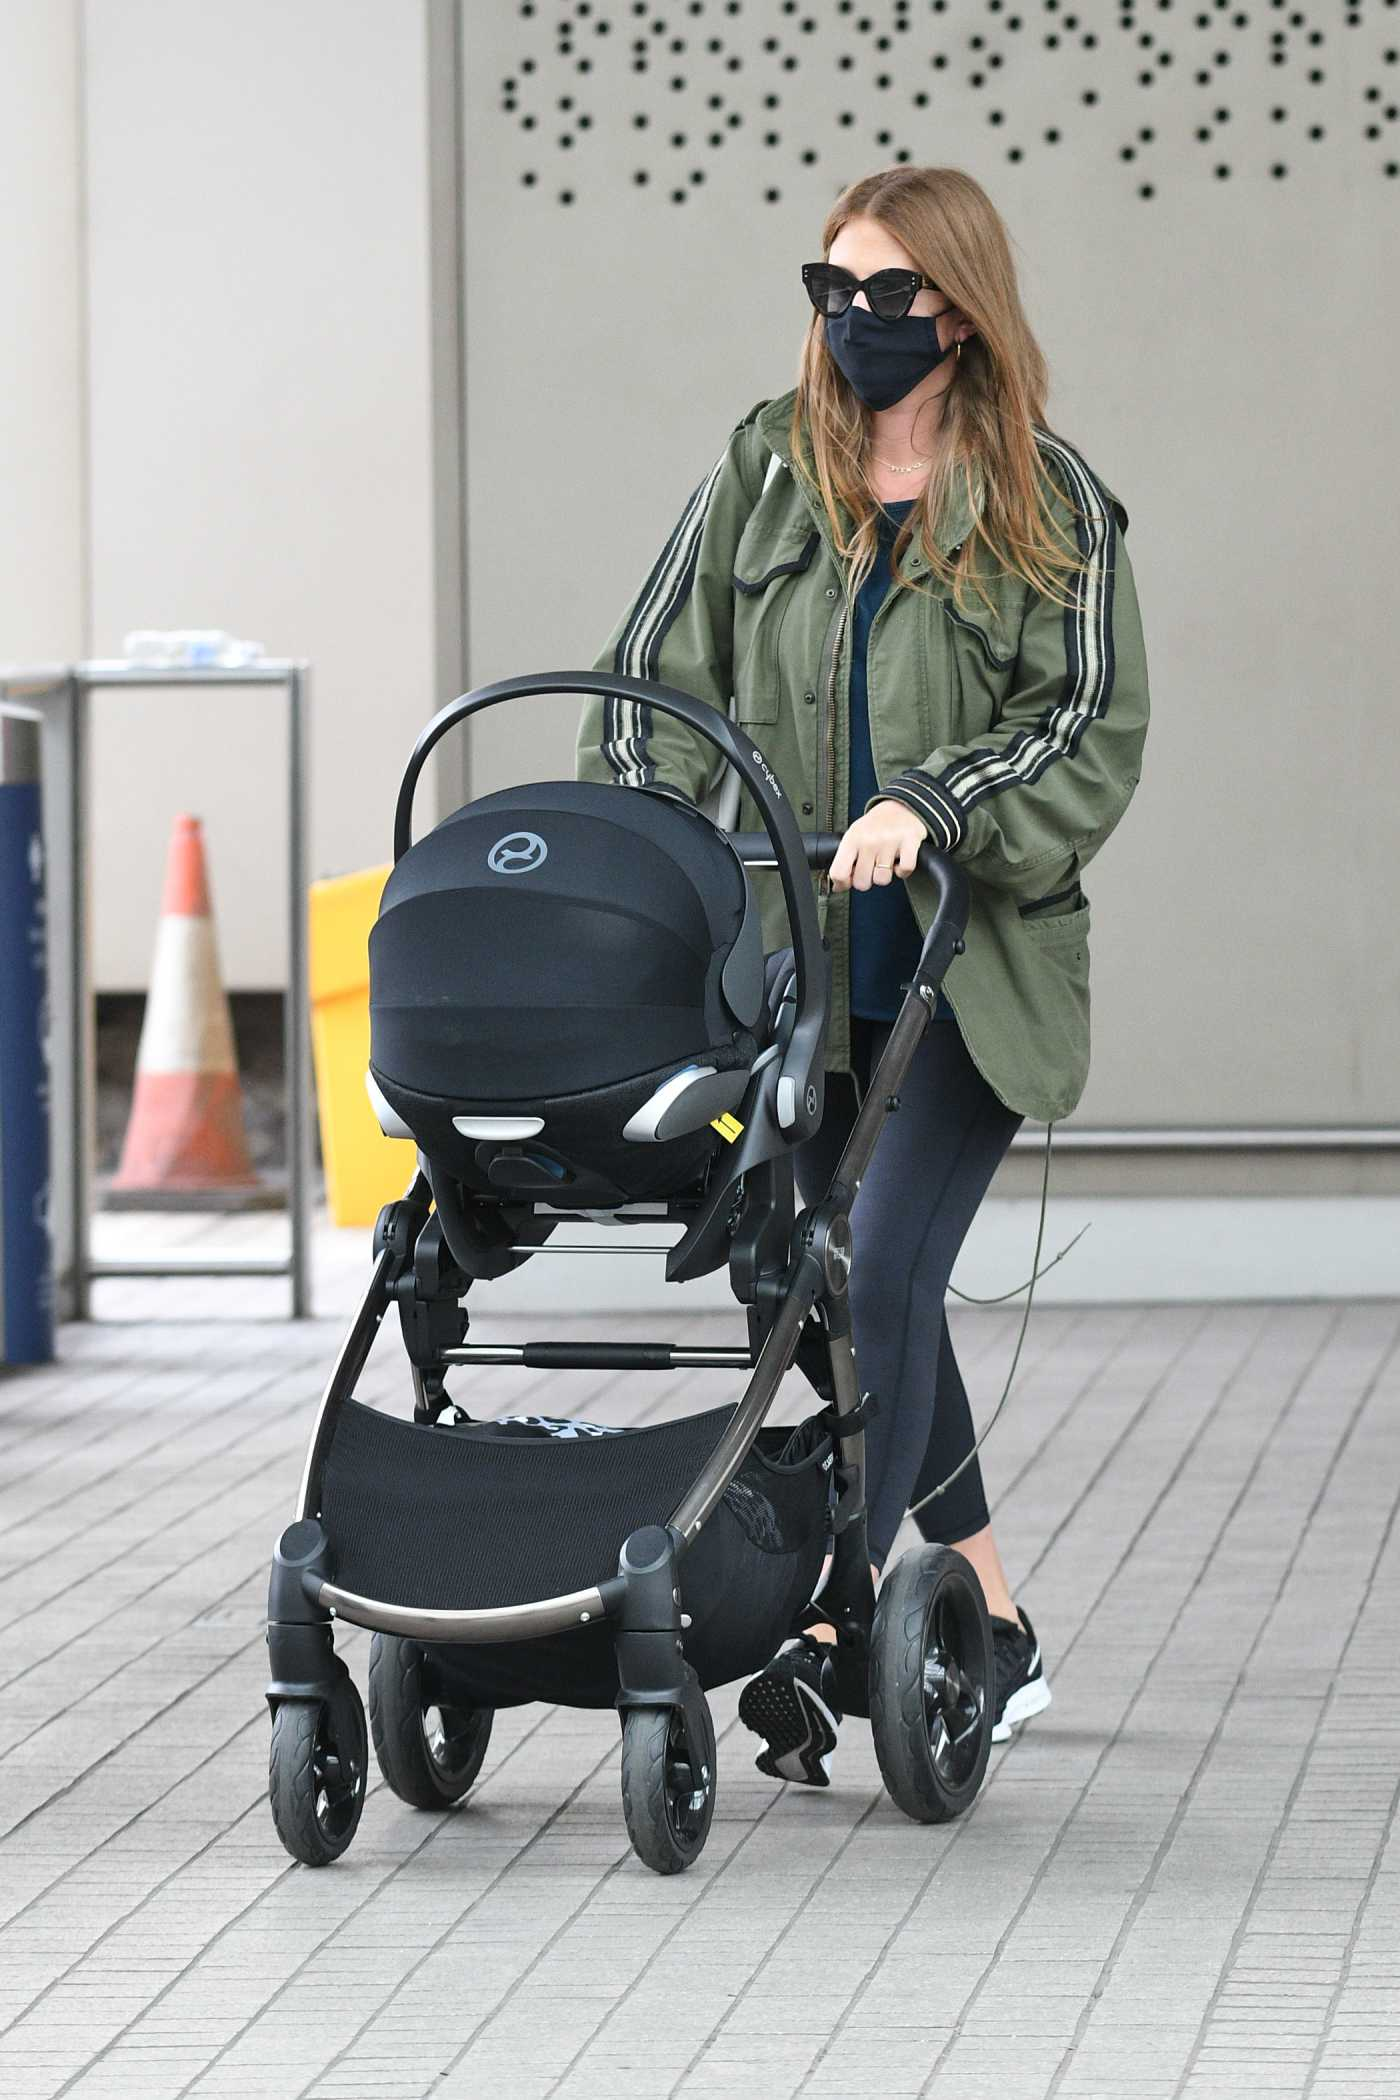 Millie Mackintosh in a Black Protective Mask Was Seen Out in London 07/07/2020